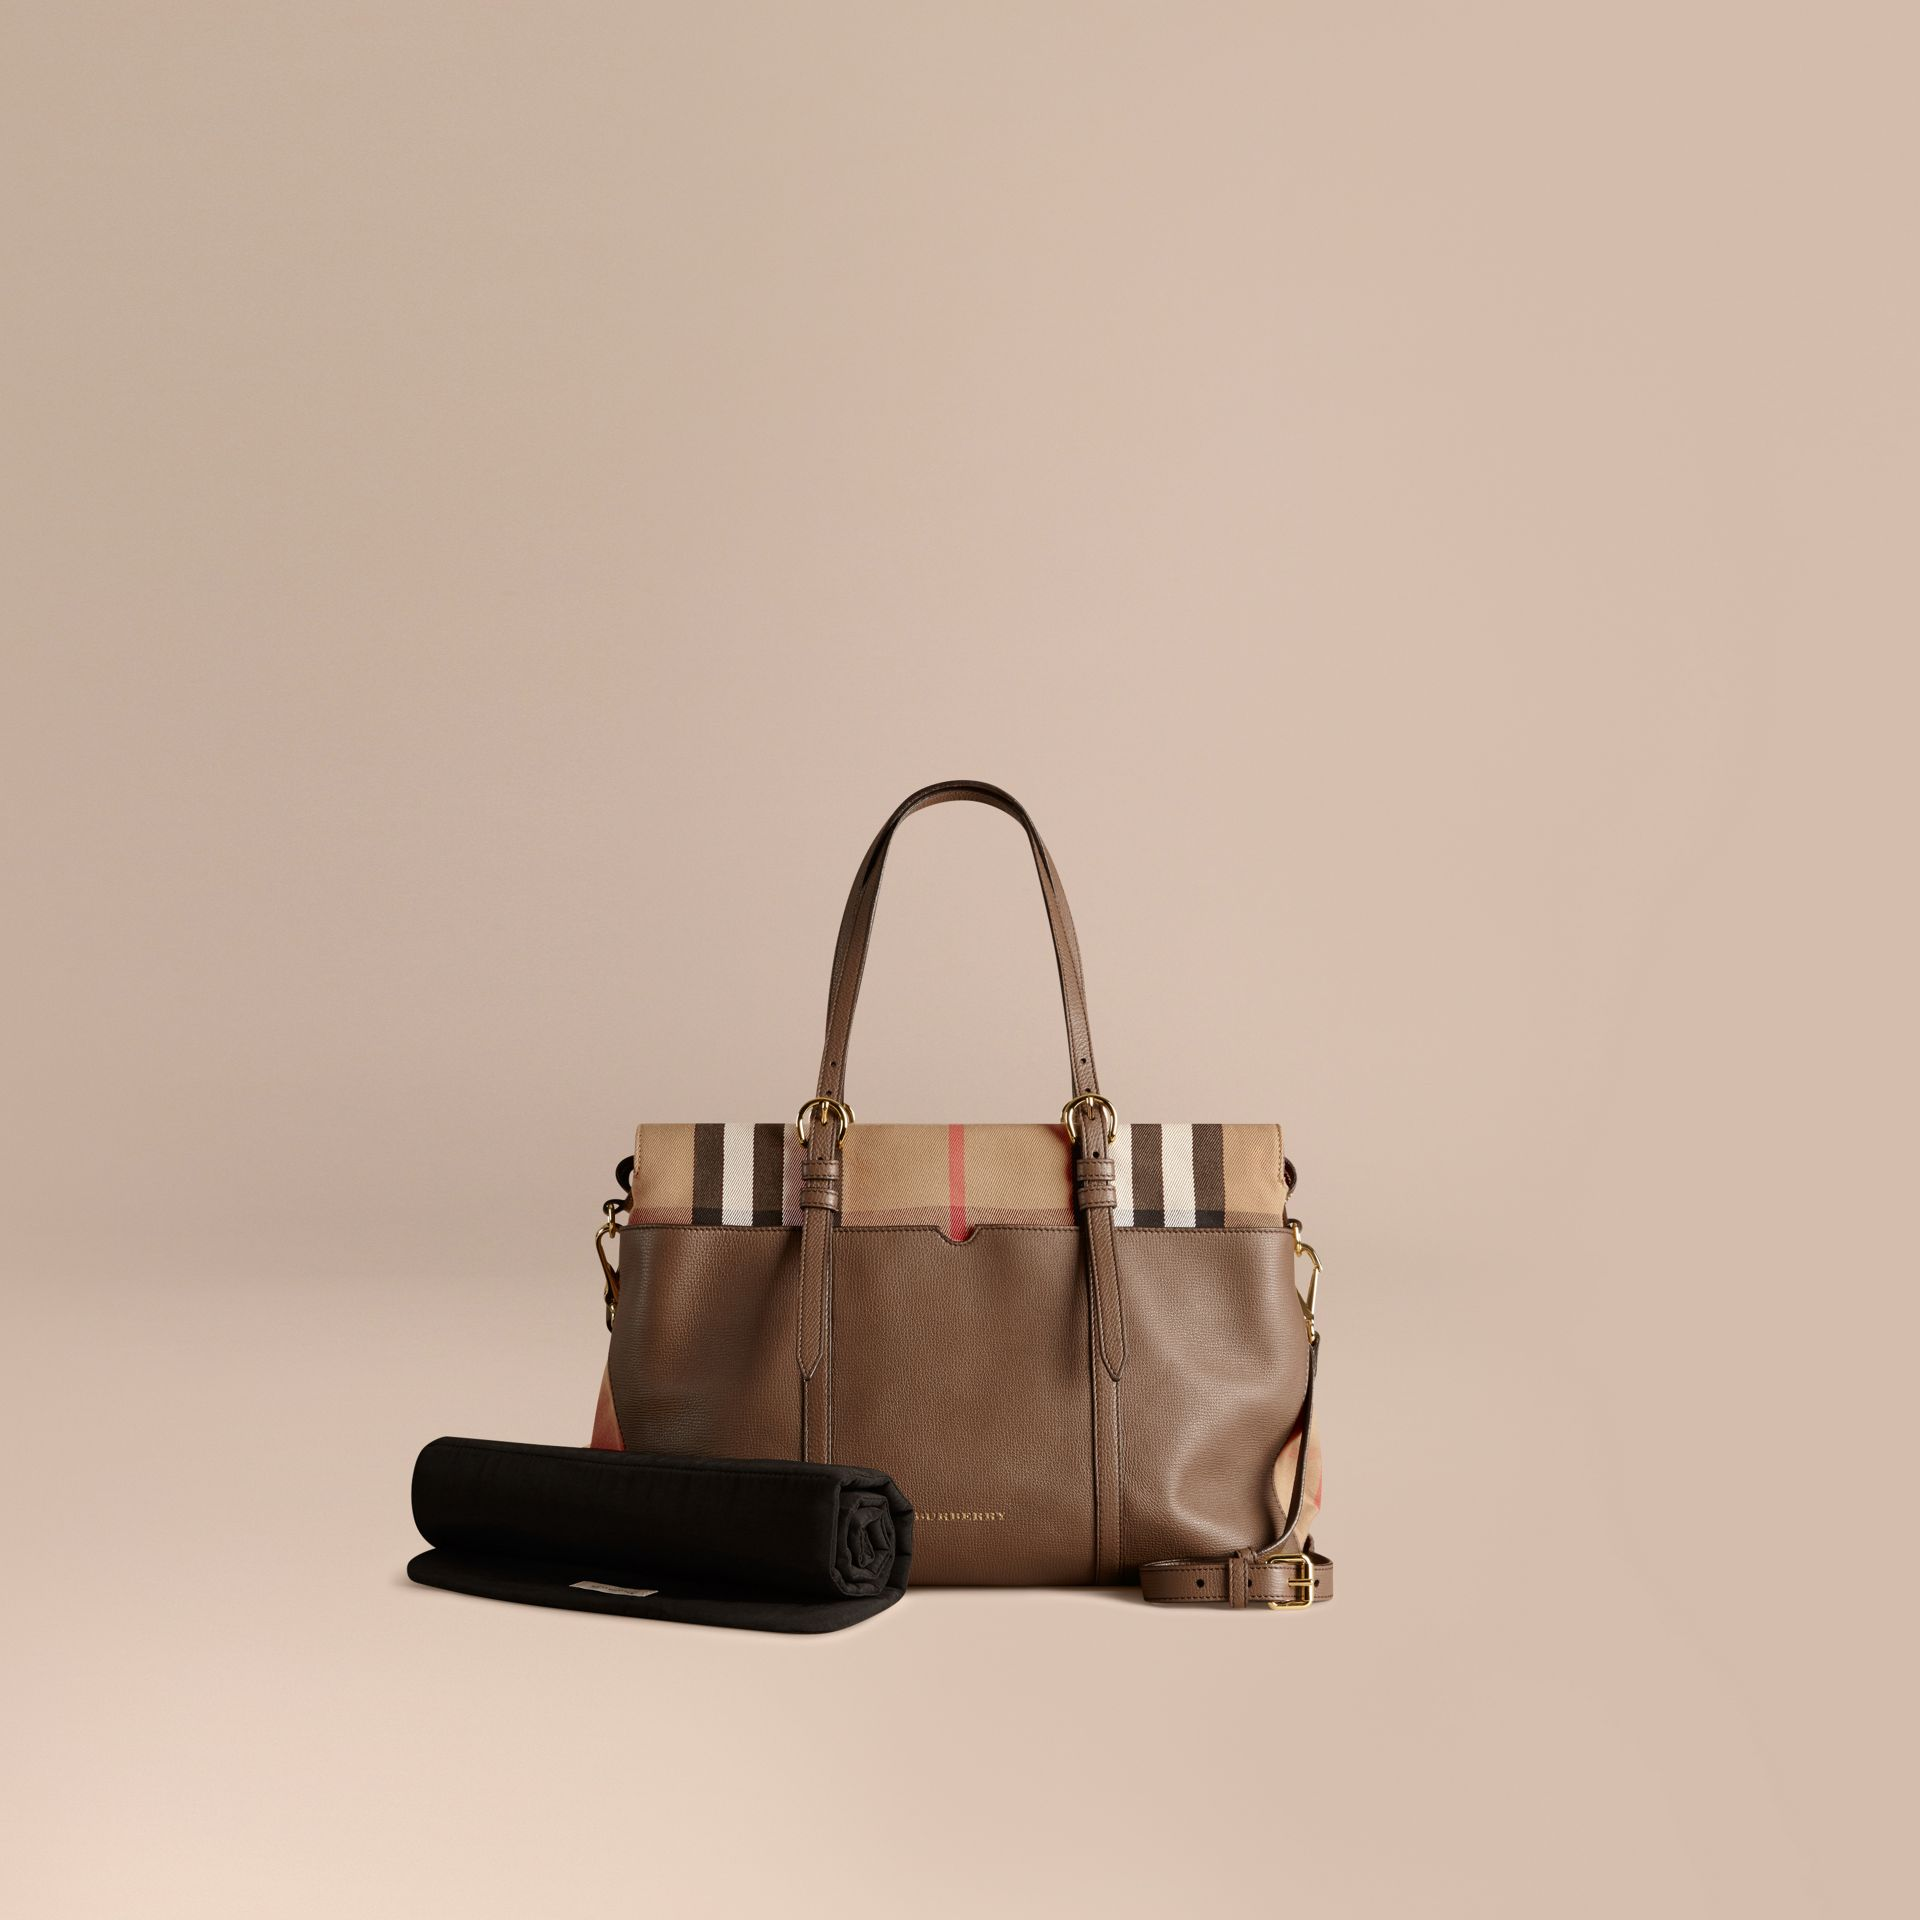 House Check and Leather Baby Changing Bag in Taupe Grey | Burberry Australia - gallery image 1